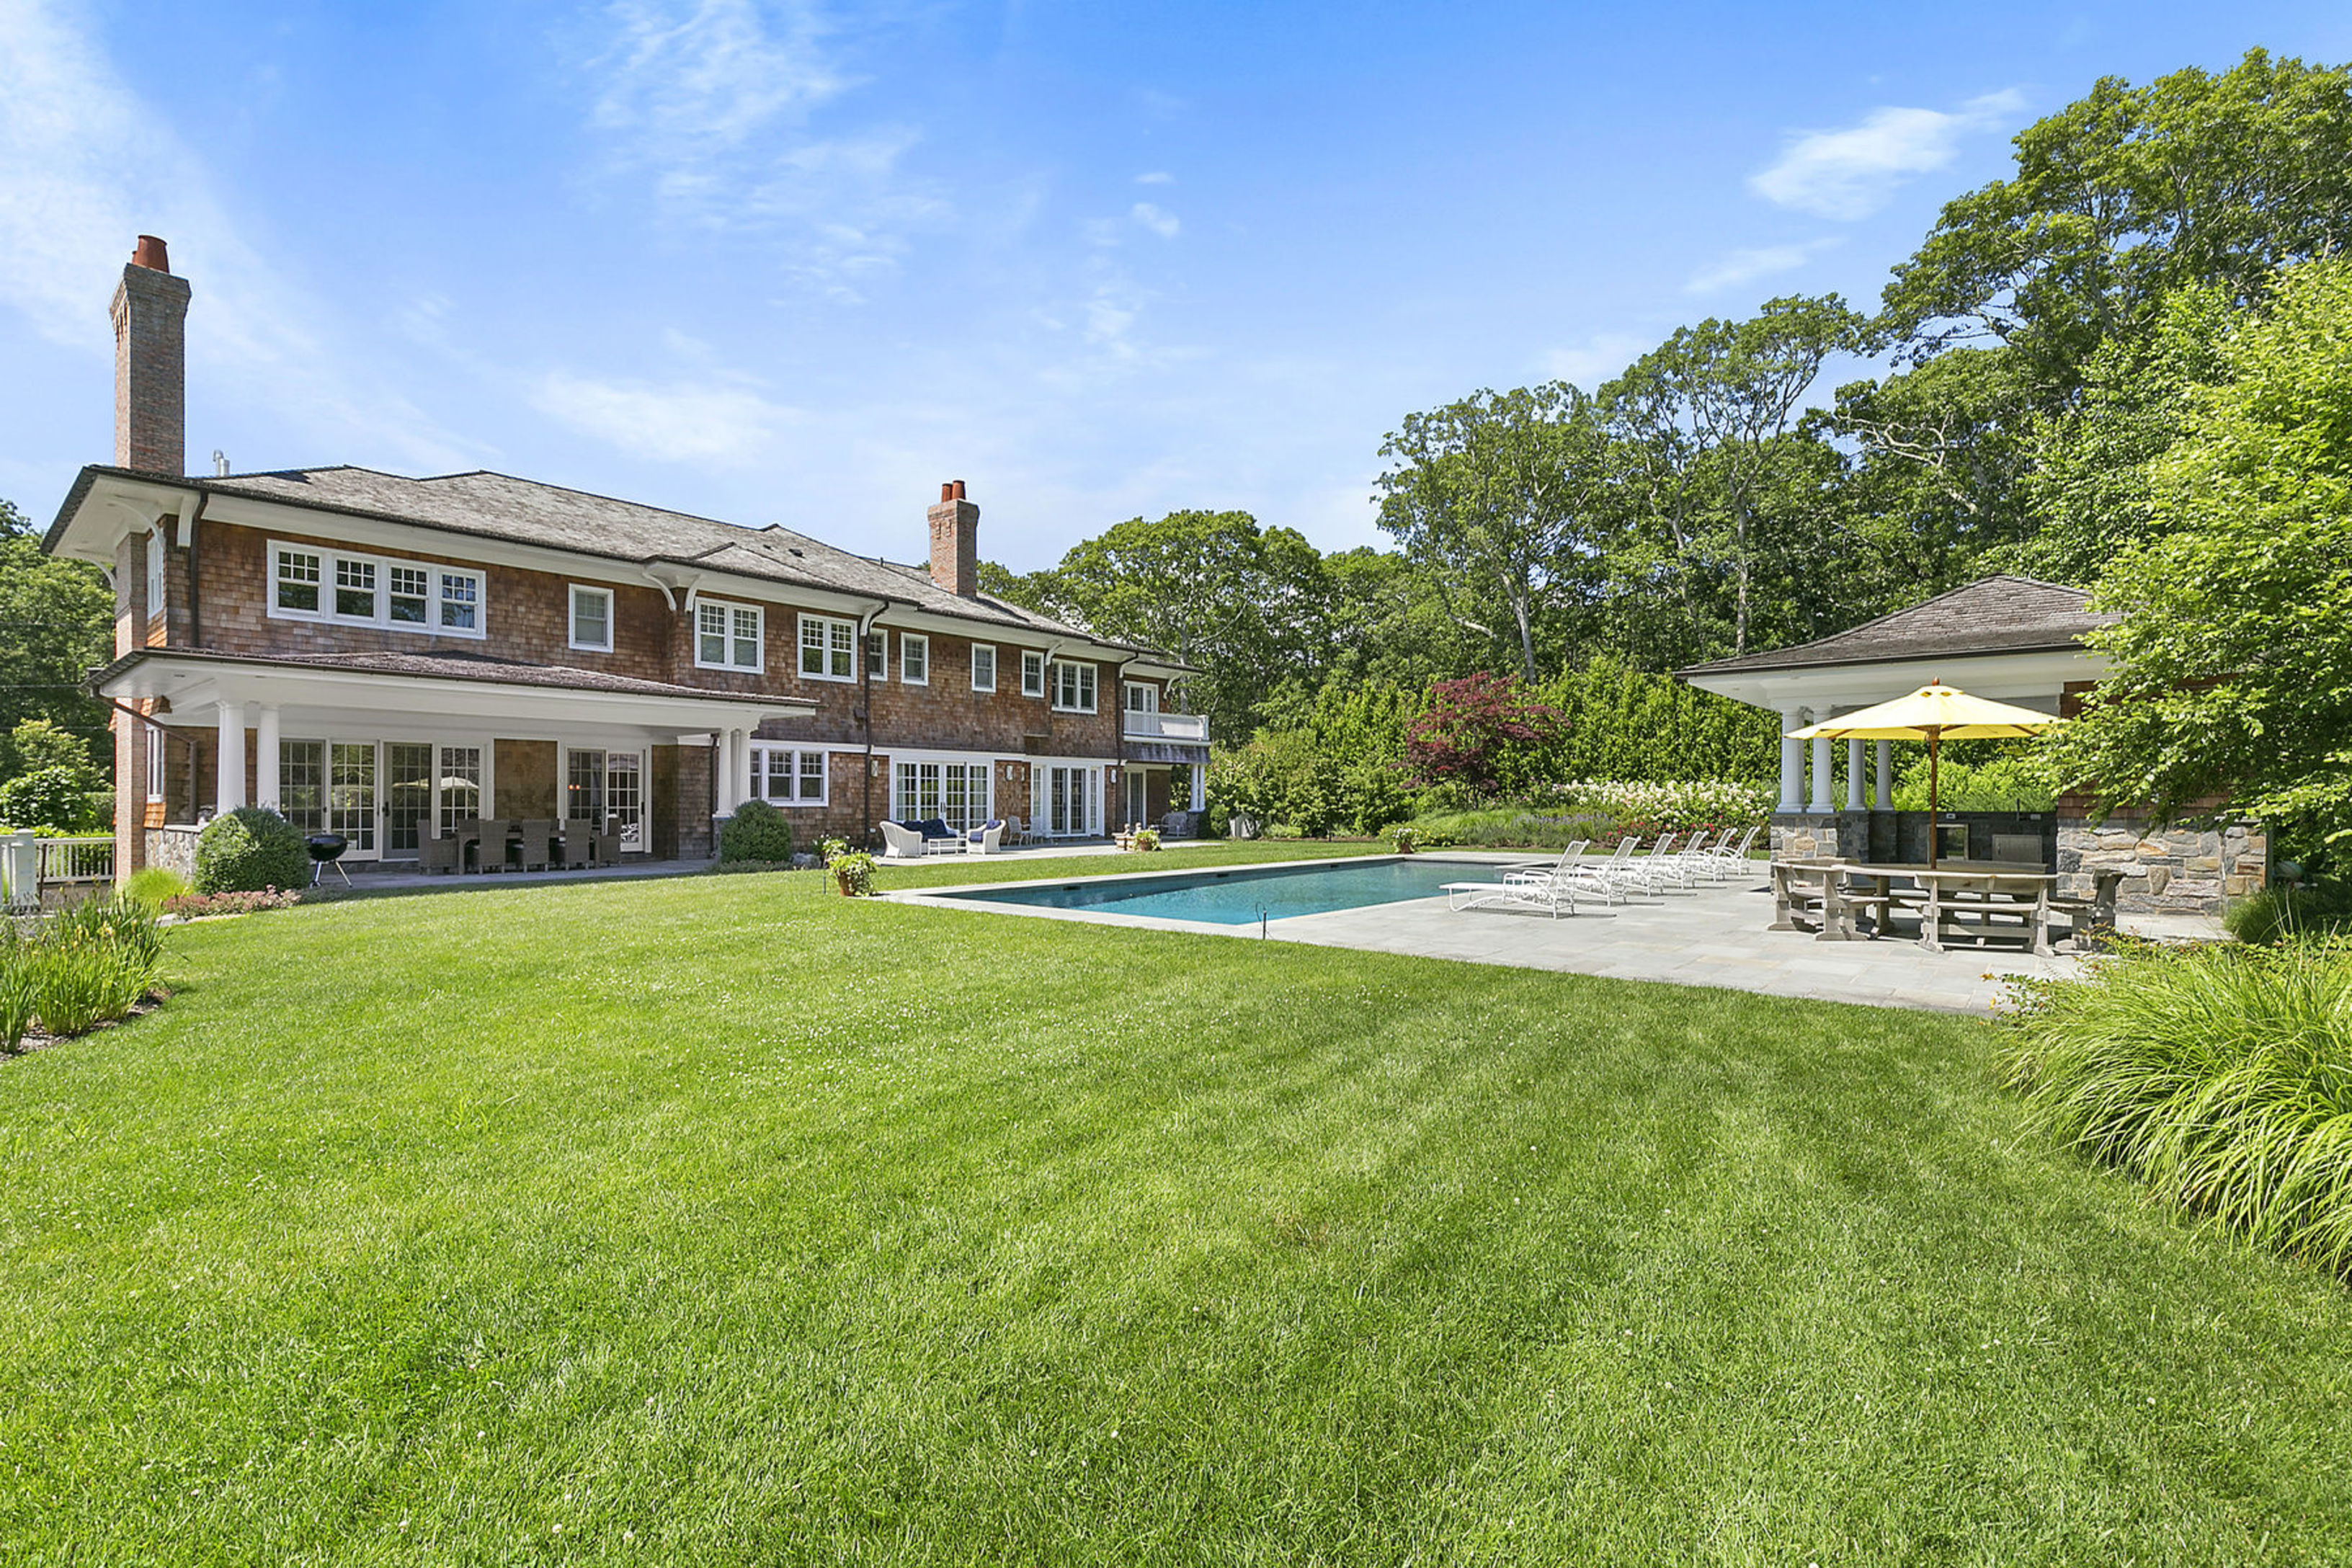 234 Cove Hollow Rd - East Hampton Village, New York